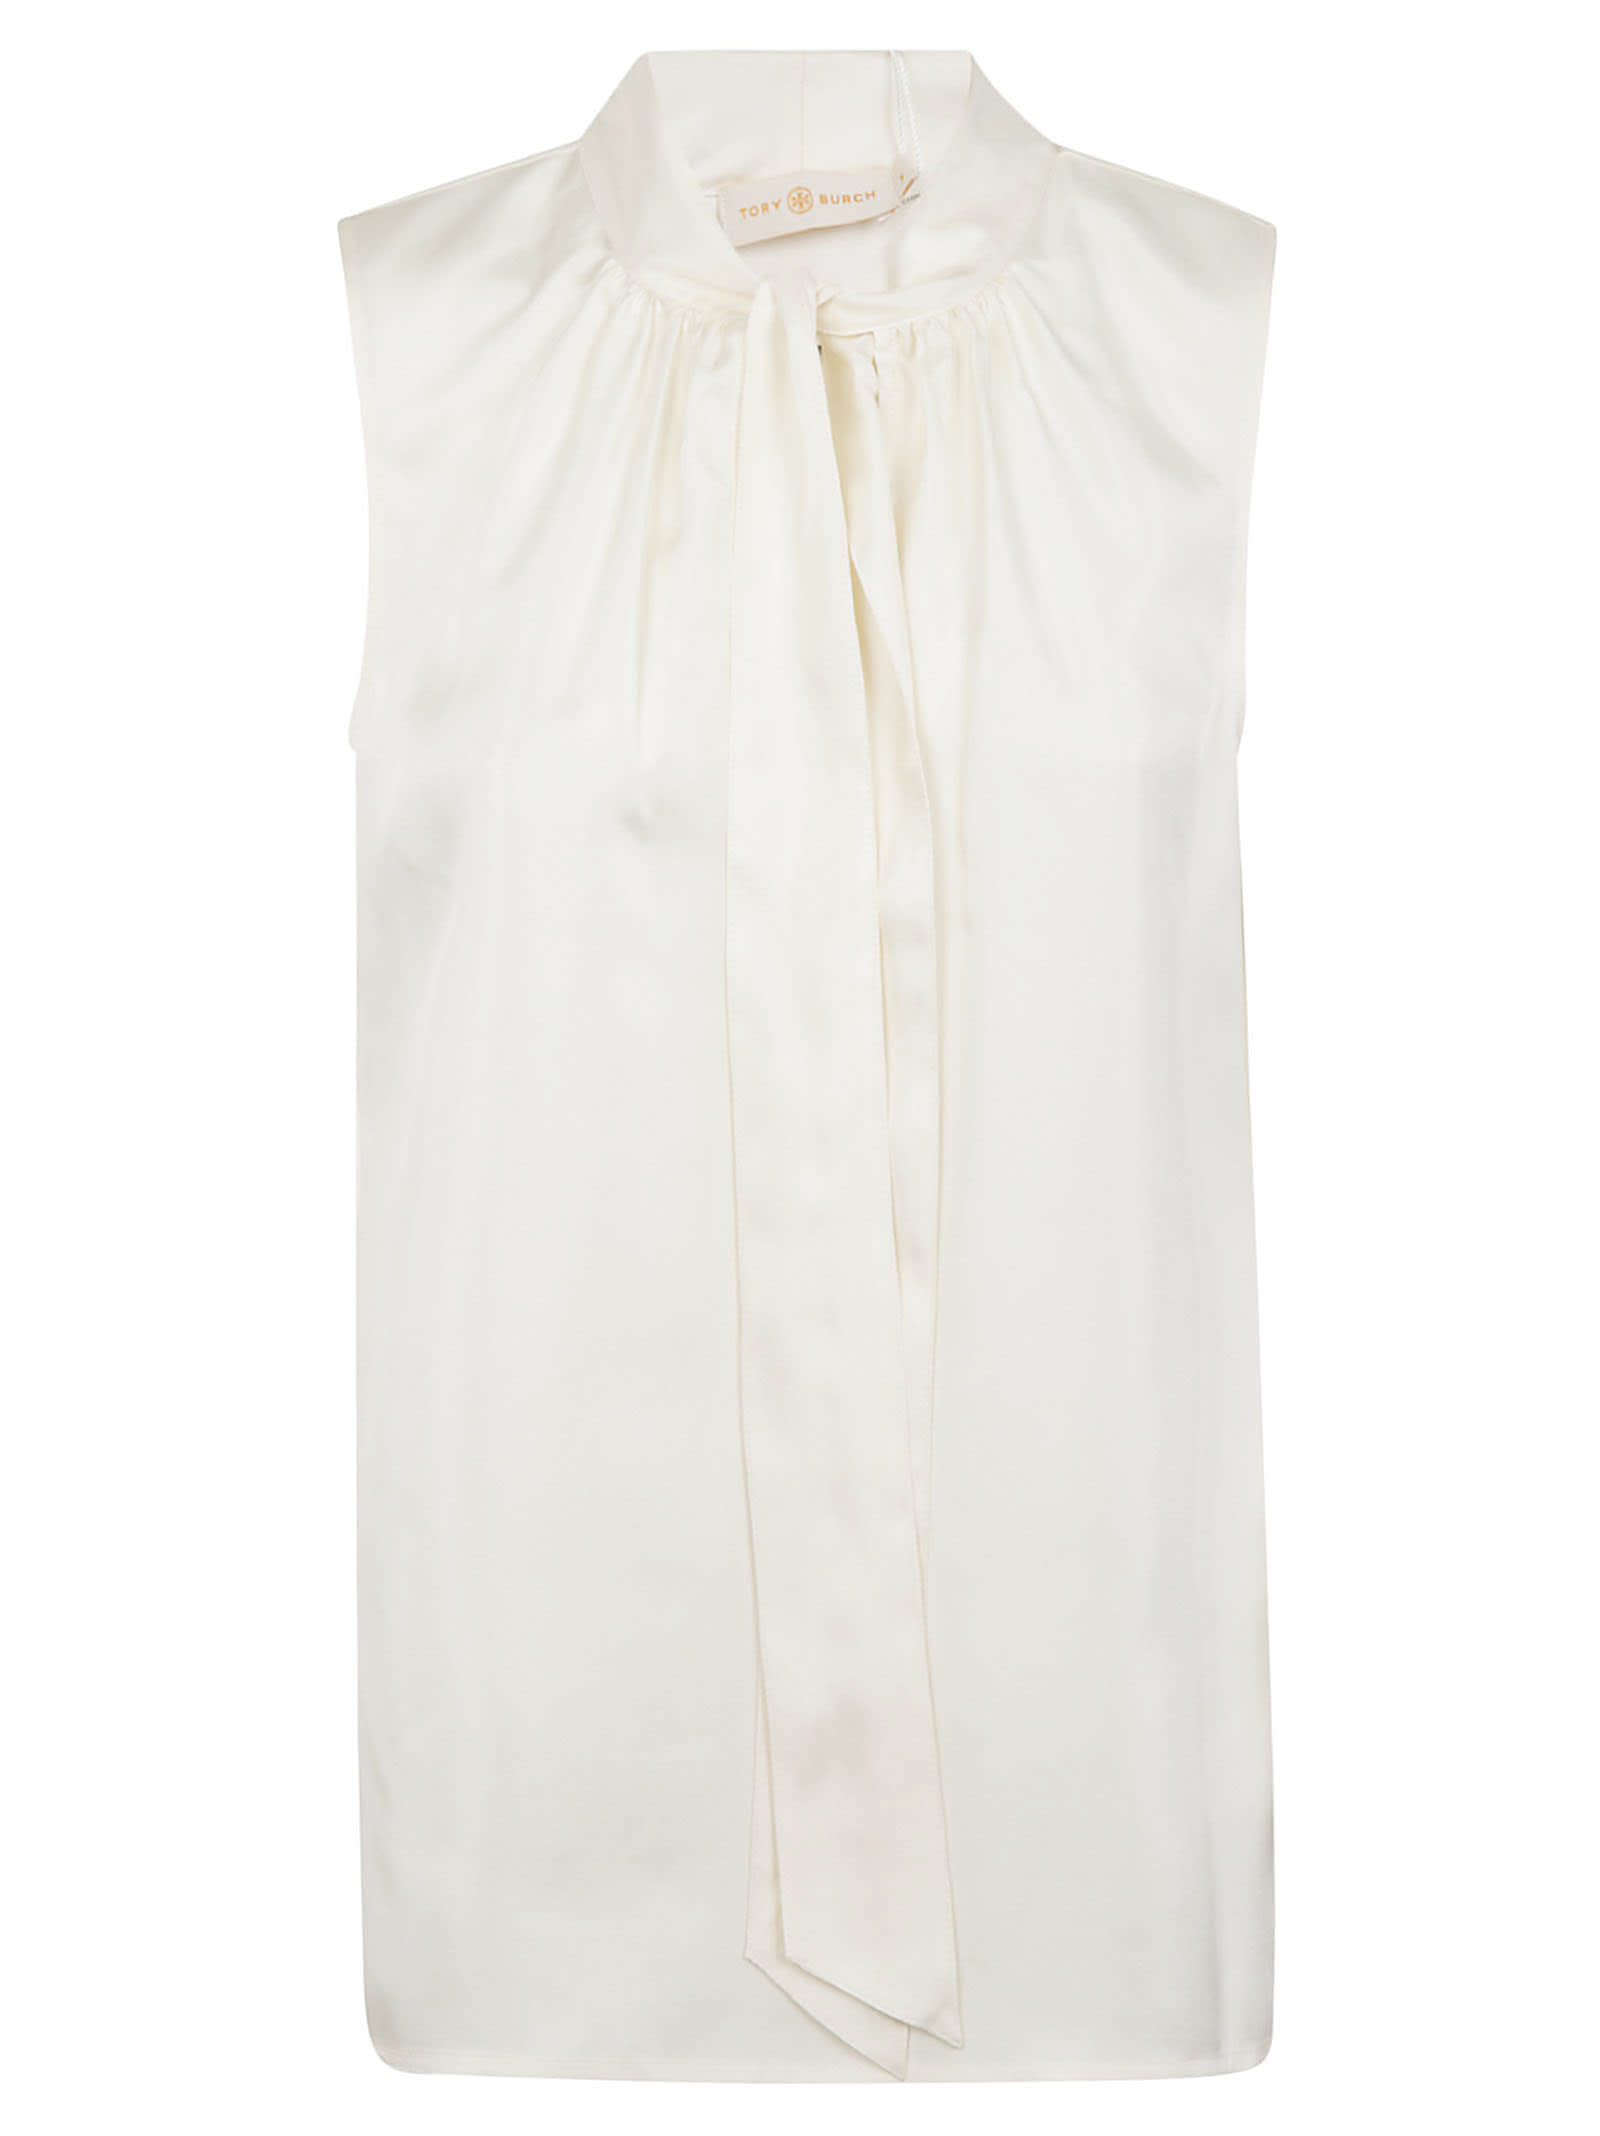 Tory Burch Bow-tie Blouse